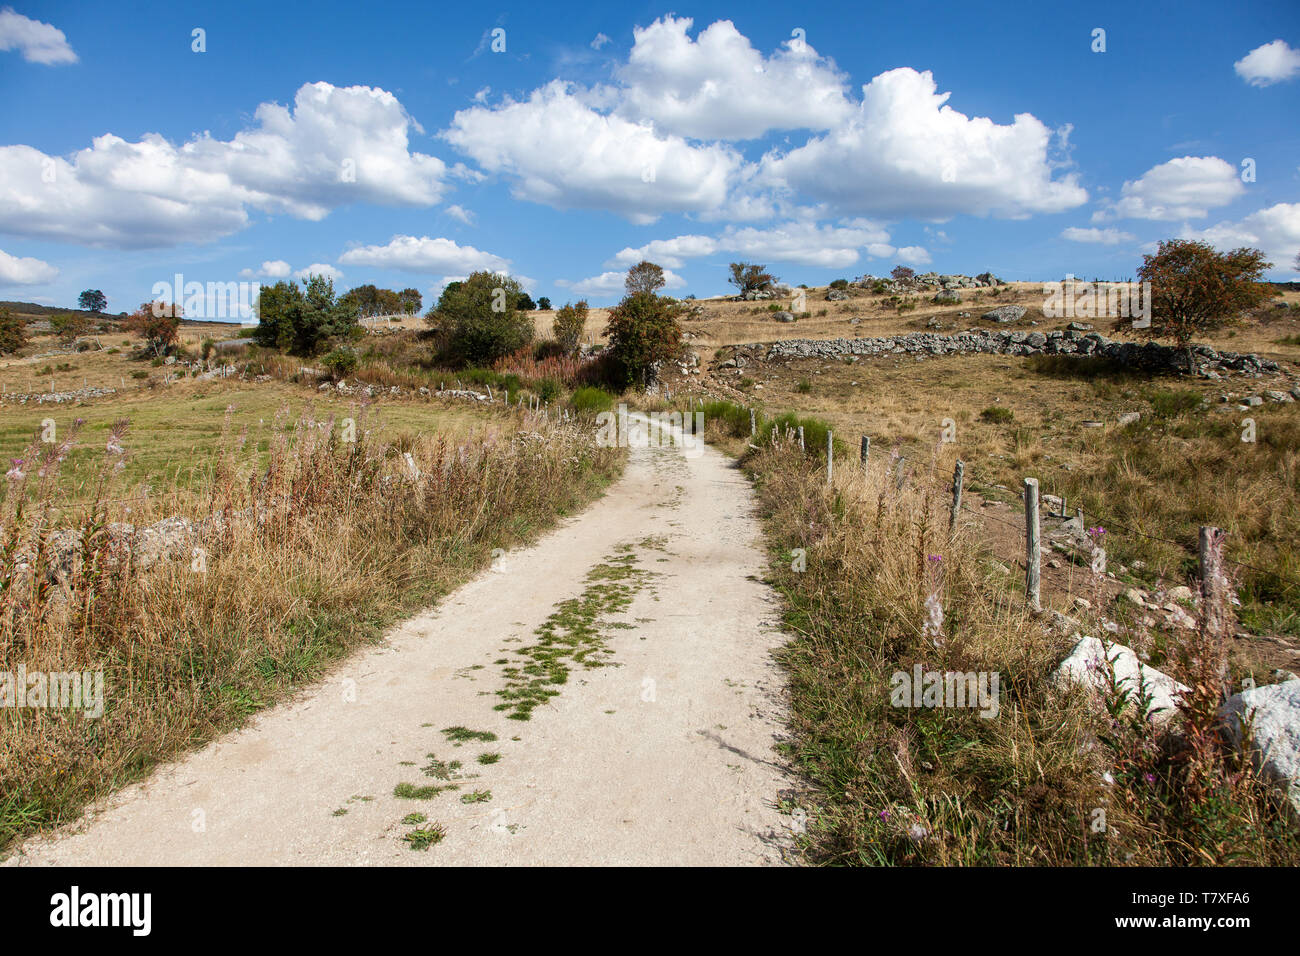 On the Way of St James (Santiago de Compostela), in the Aubrac area: country lane - Stock Image